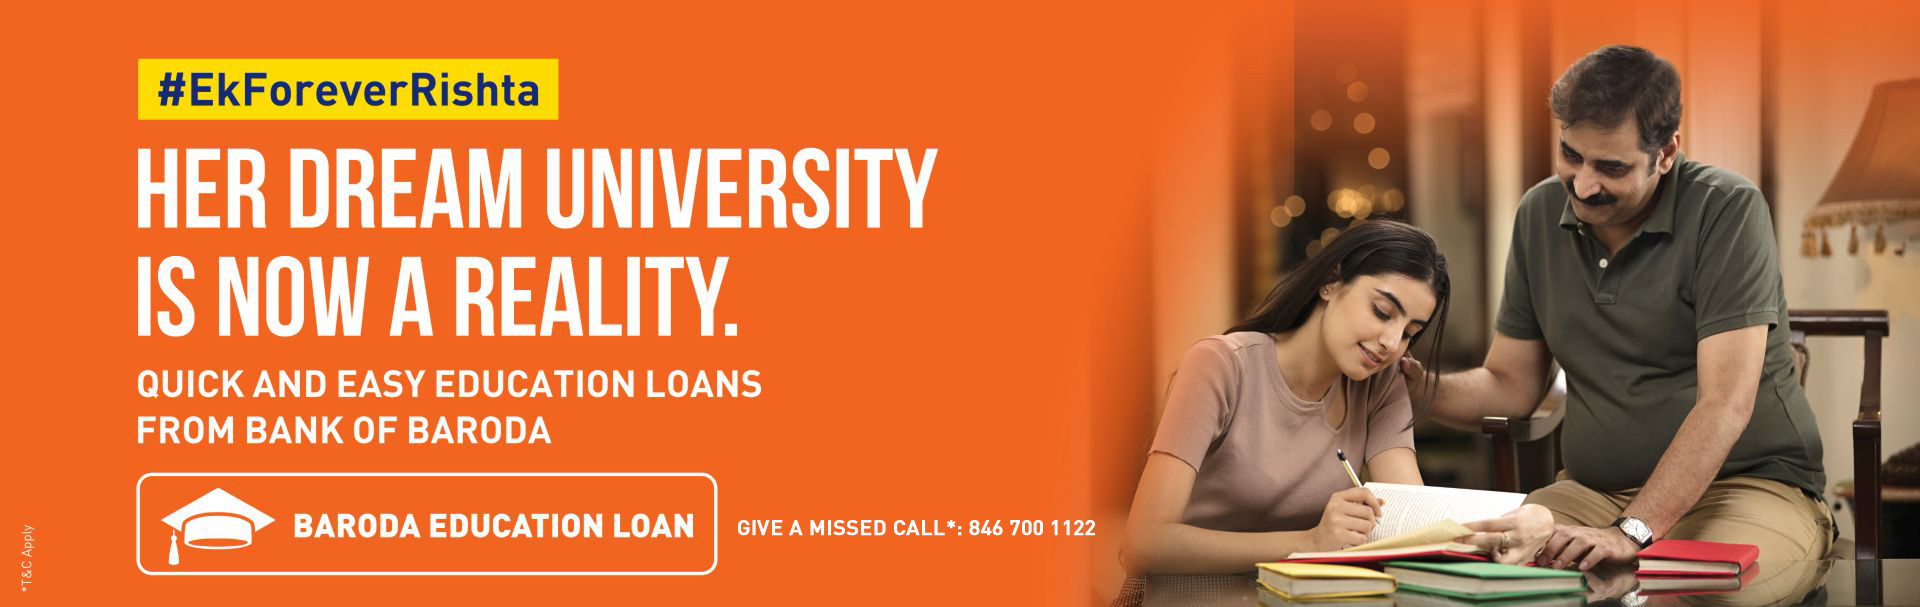 Baroda Education Loan for EDP being offered by Premier Institutions in India